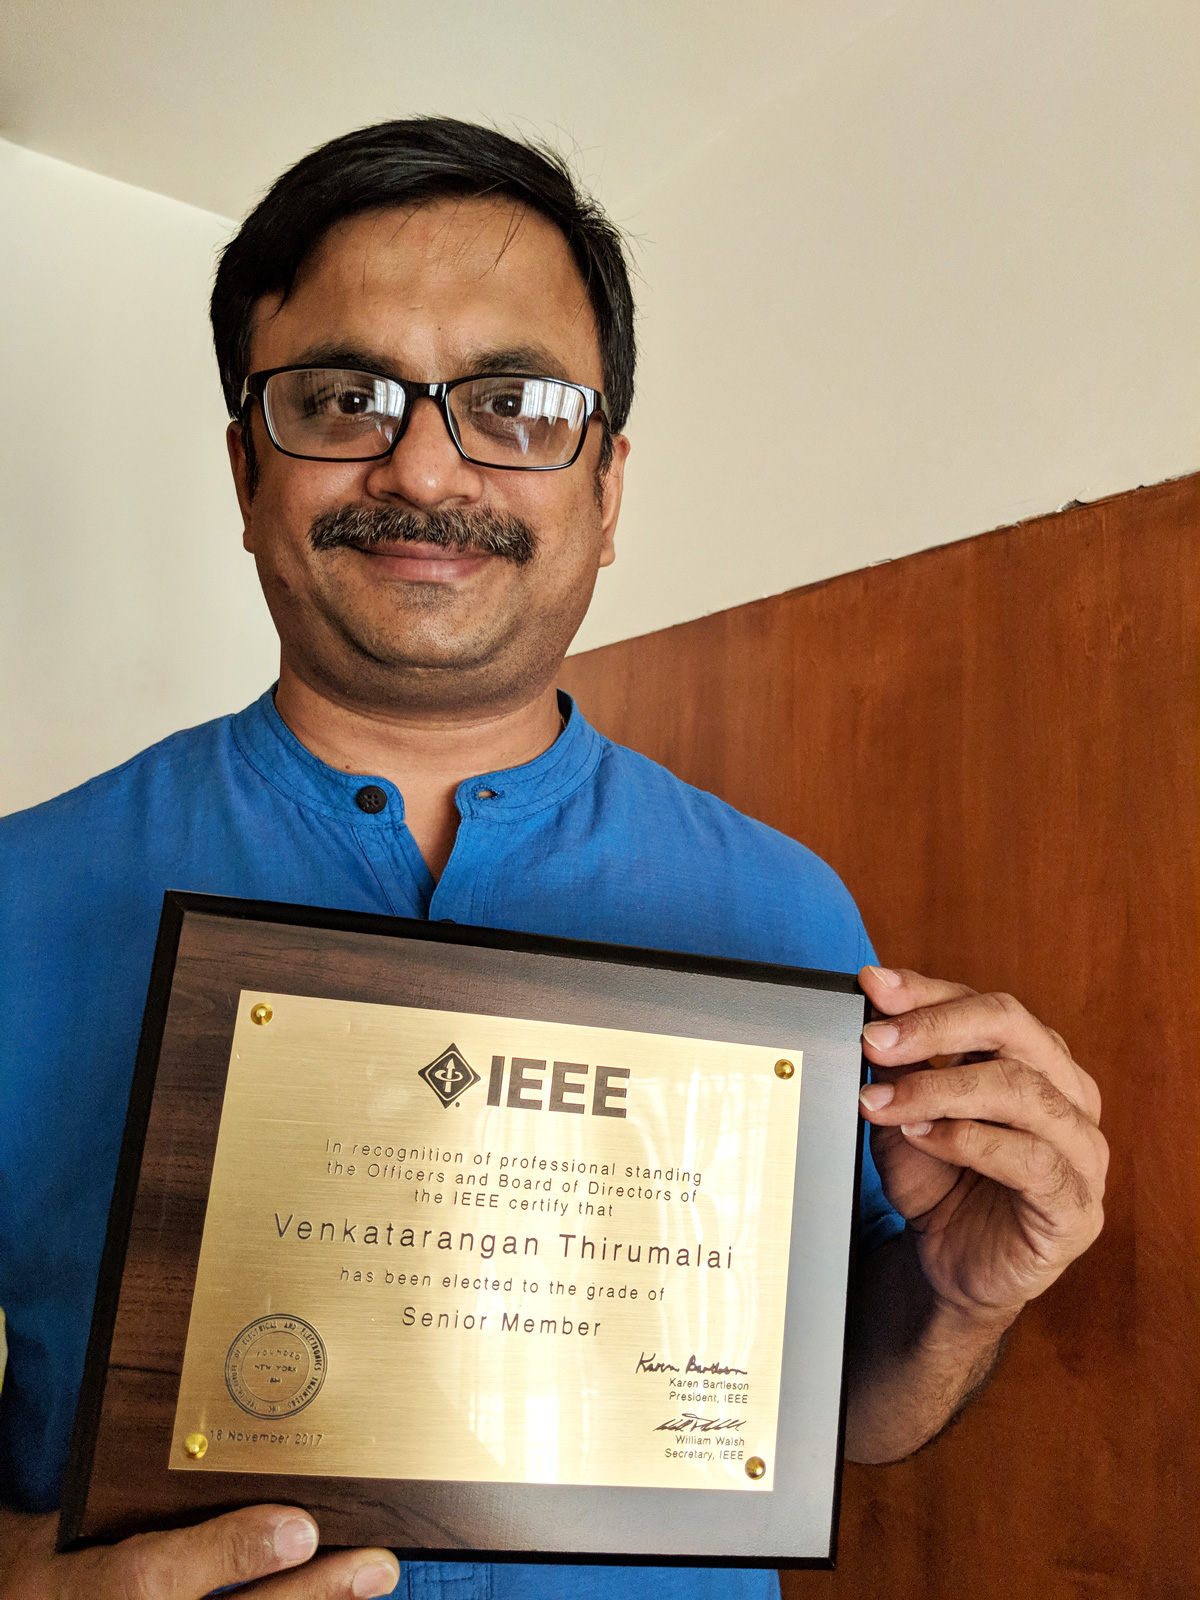 Super happy to be holding the IEEE Senior Member plaque